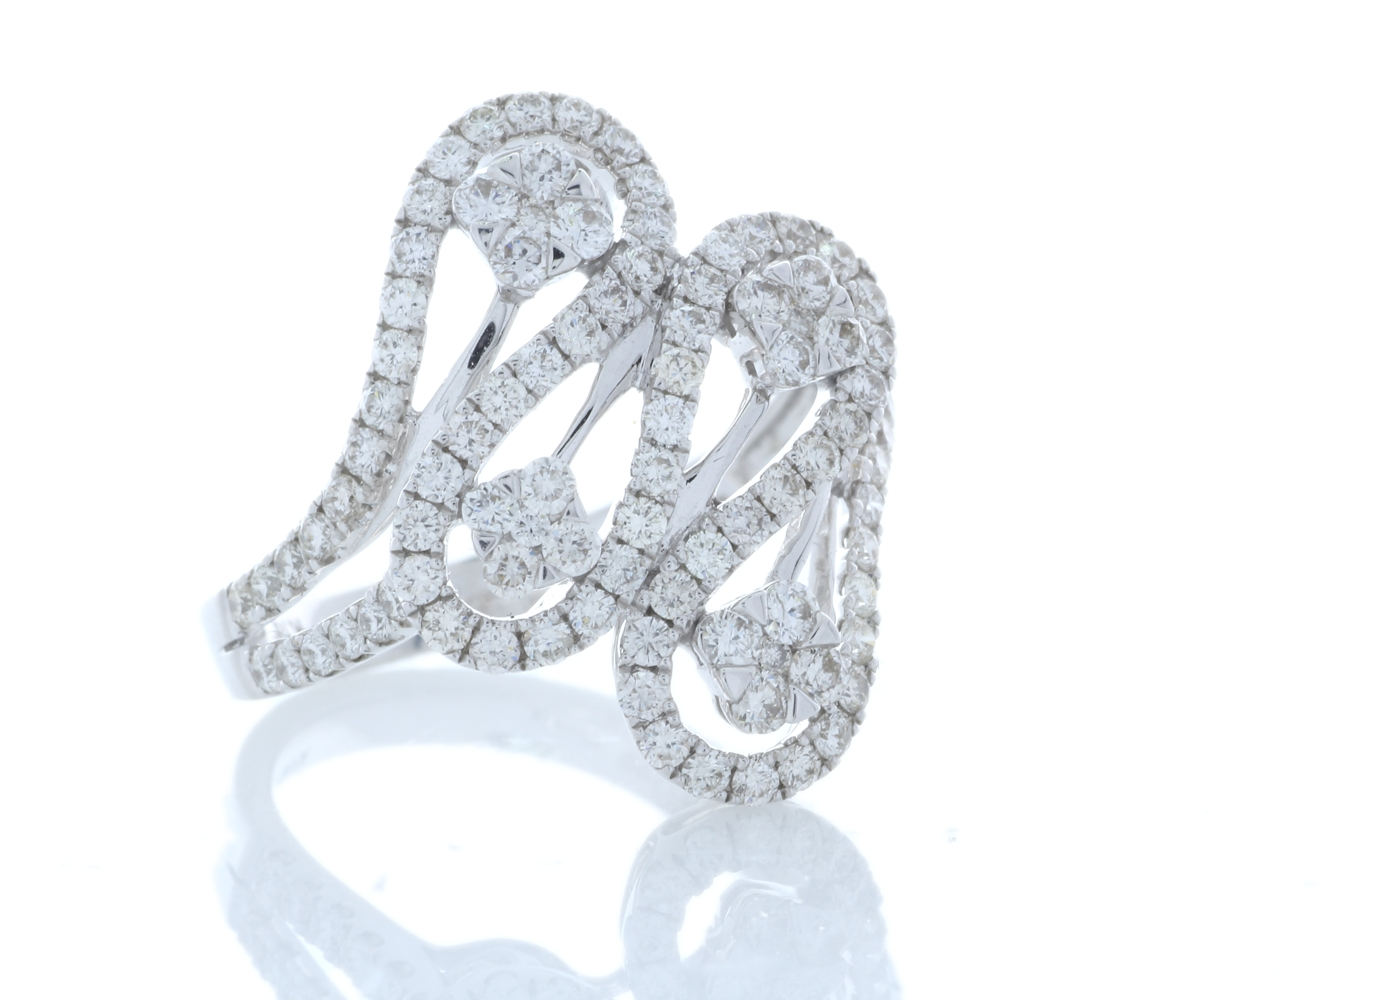 18ct White Gold Fancy Cluster Diamond Ring 1.15 Carats - Image 4 of 4